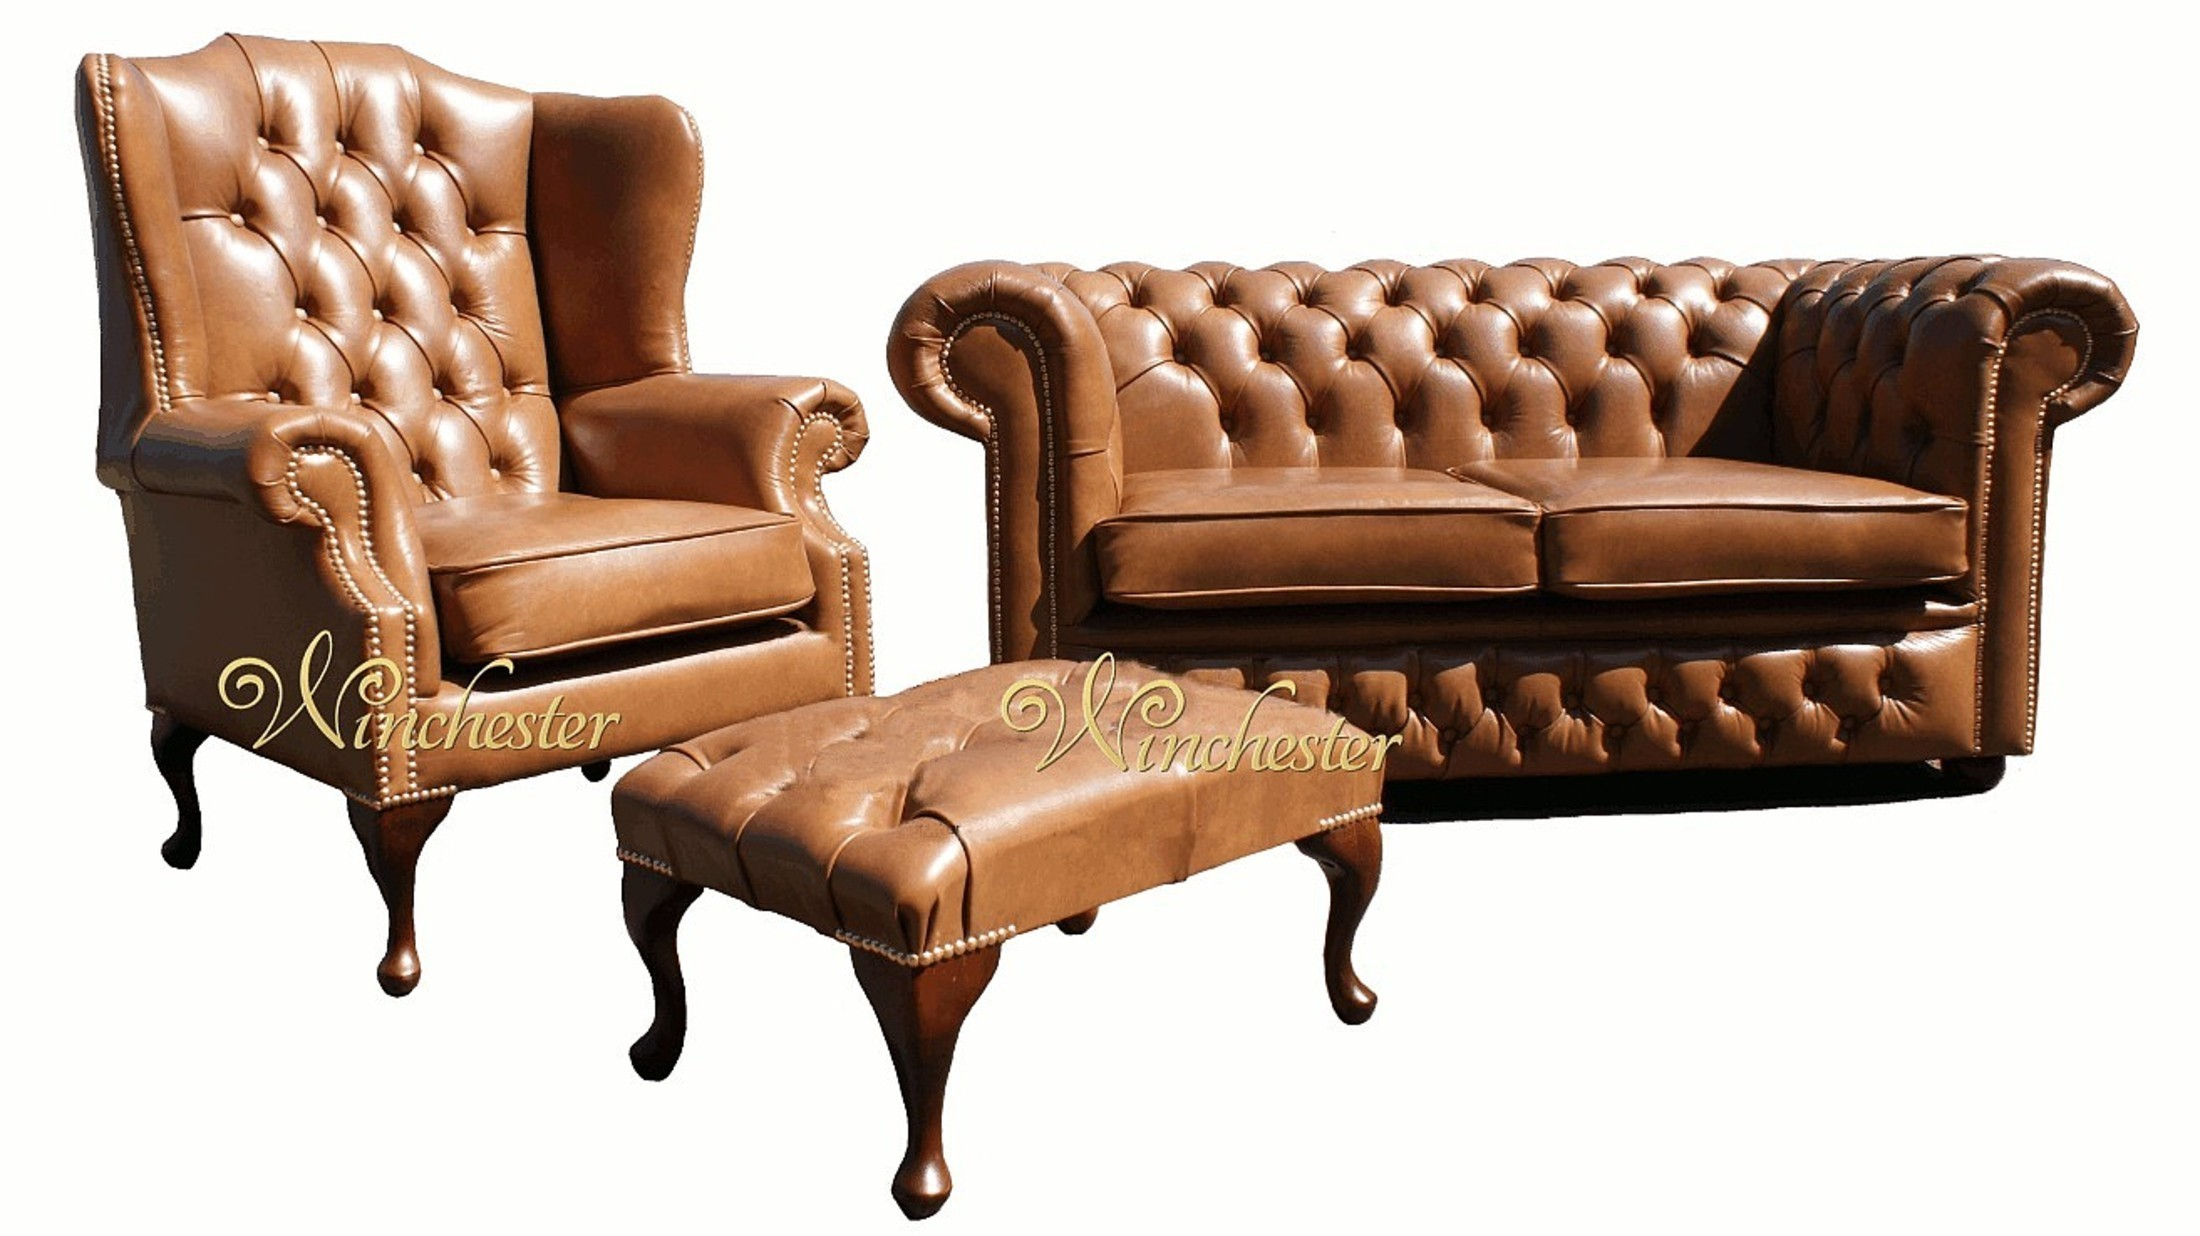 Chesterfield 2 Seater Sofa Settee Wing Chair Old English Tan Leather Wc